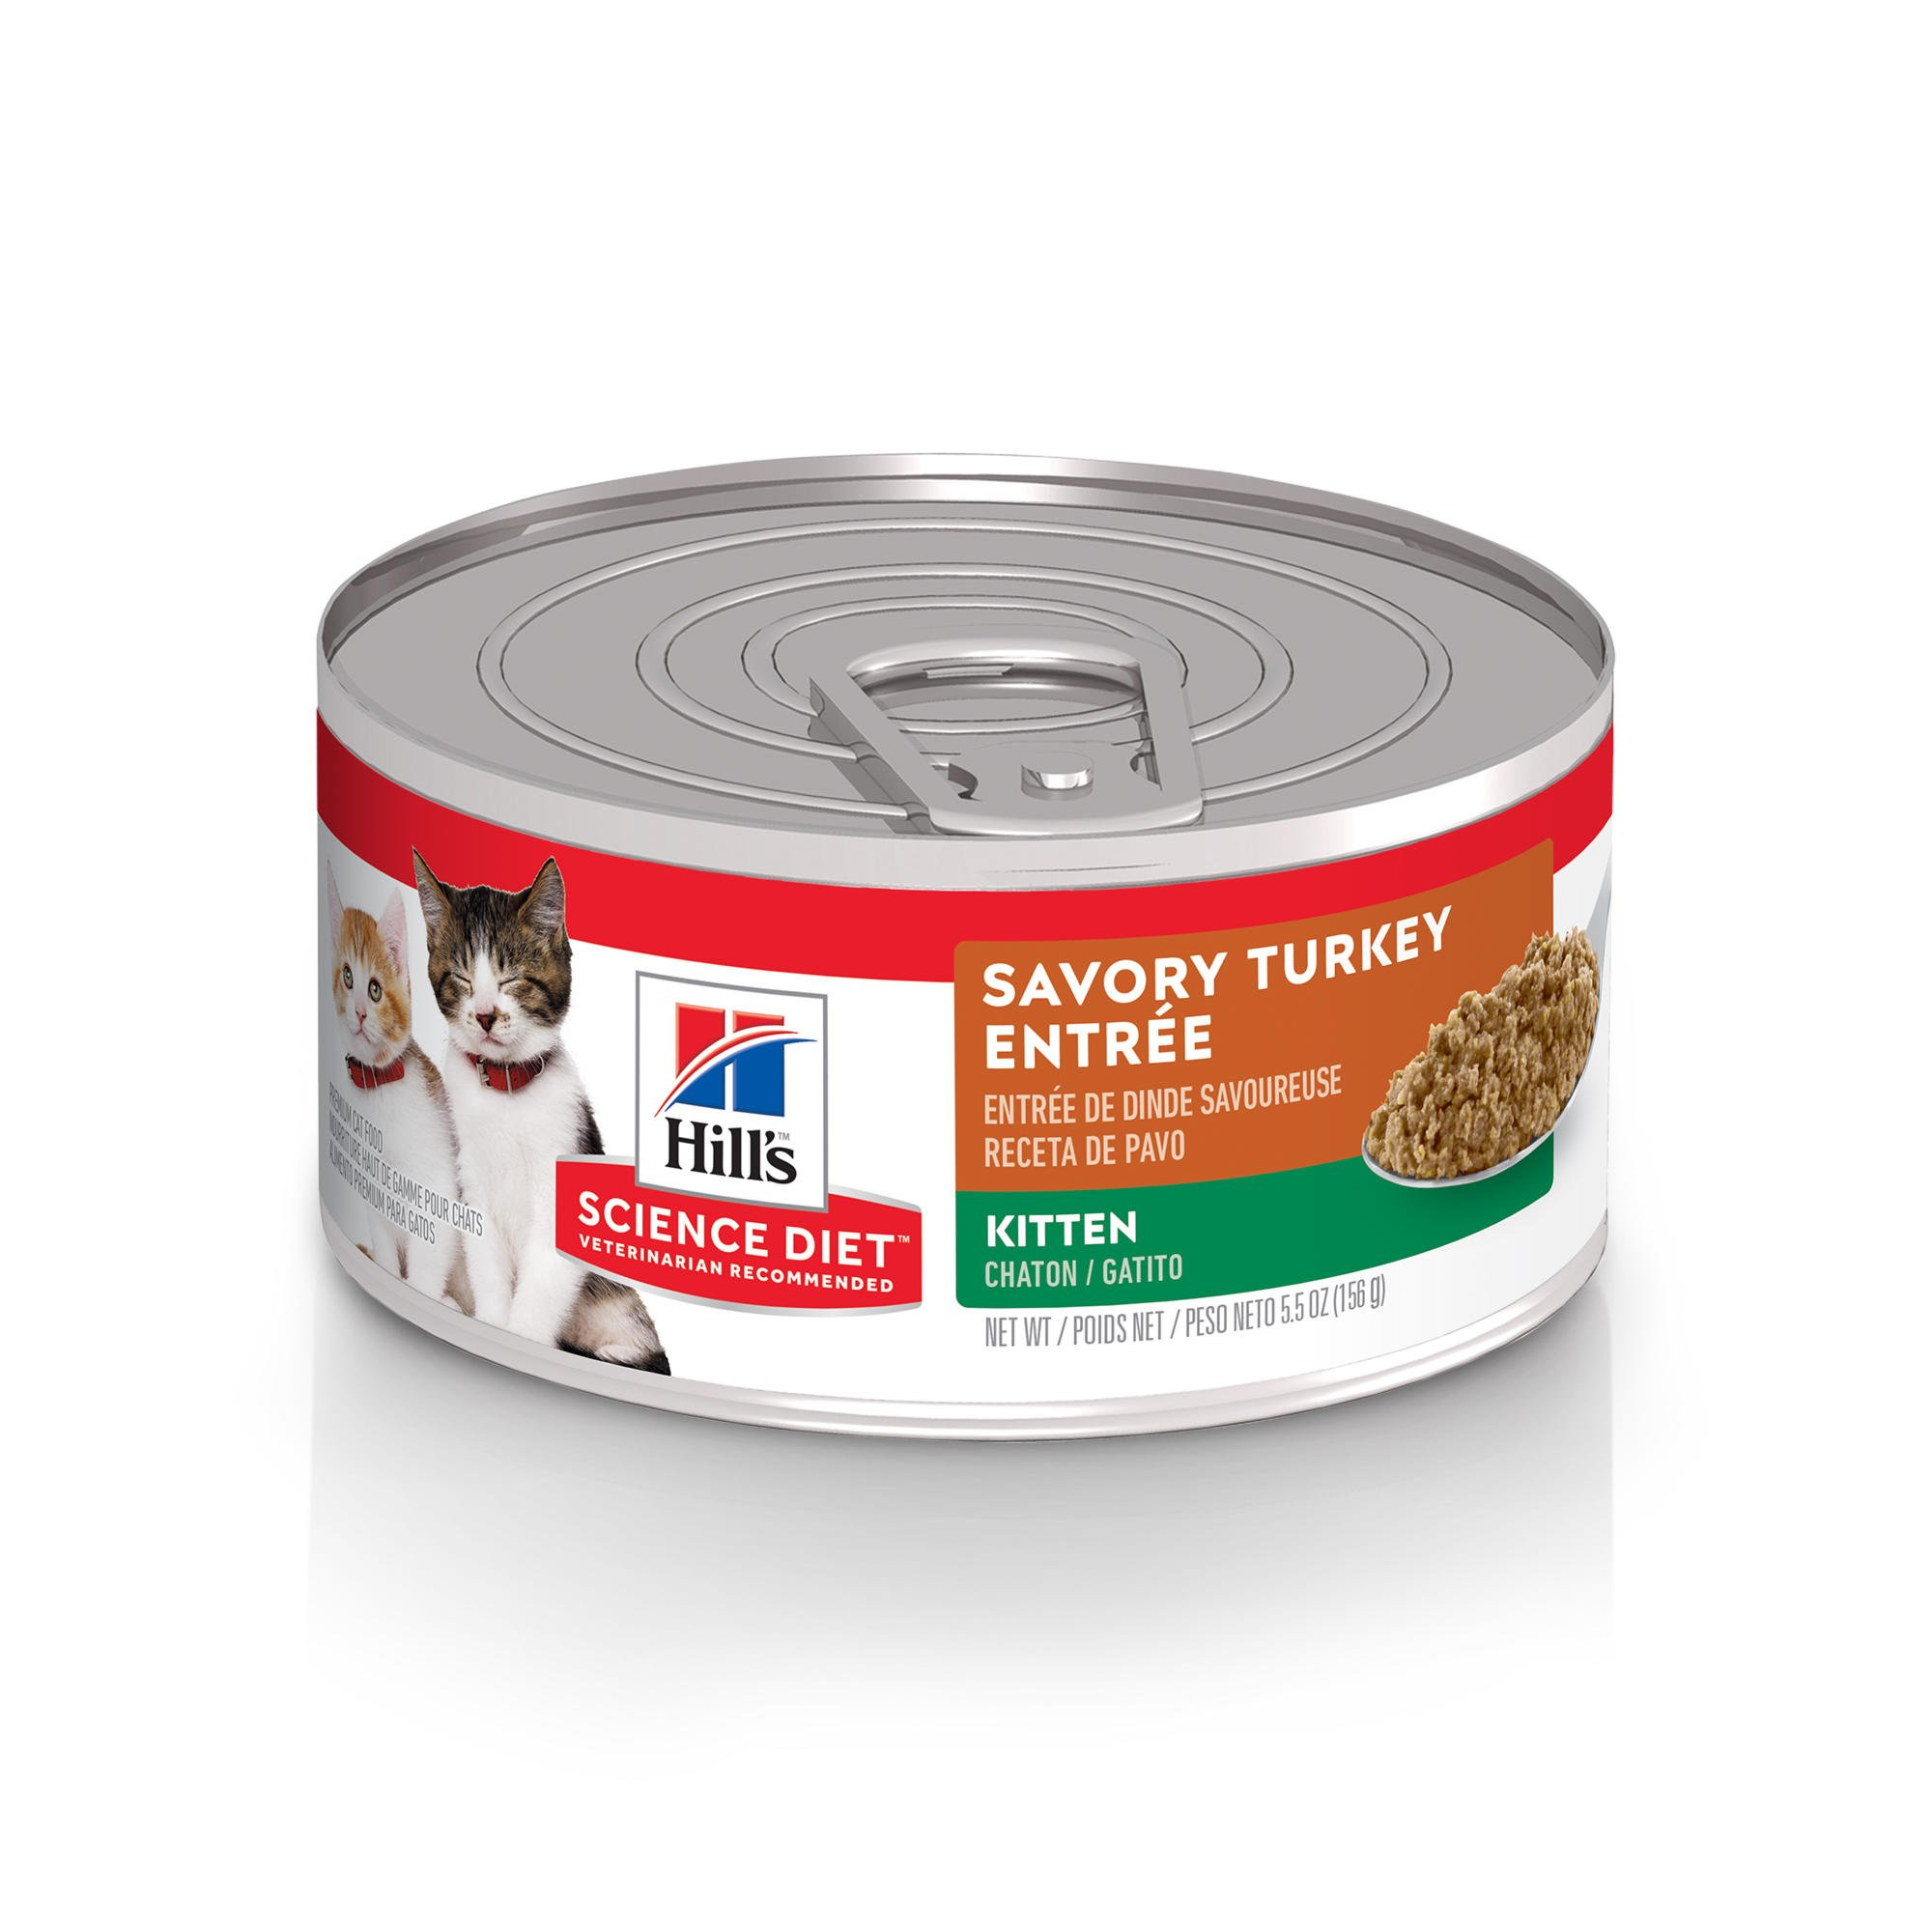 Hills Science Diet Kitten Savory Turkey Entree Canned Cat Food